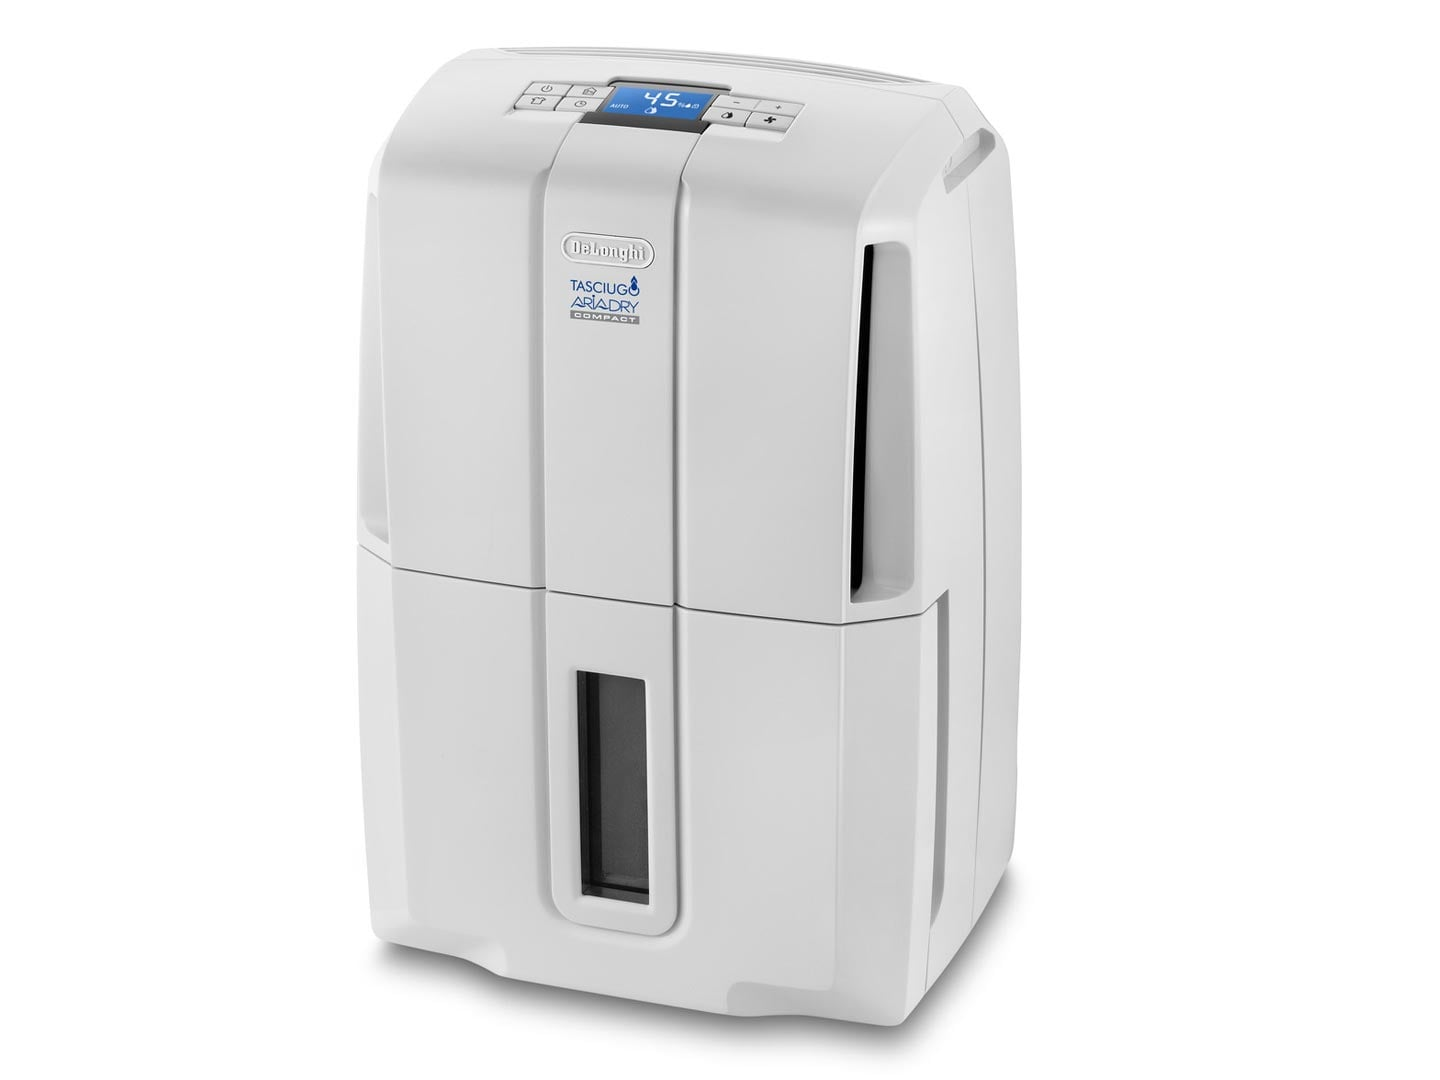 Details about Delonghi 25L DDS25 AriaDry Compact Dehumidifier #31619A